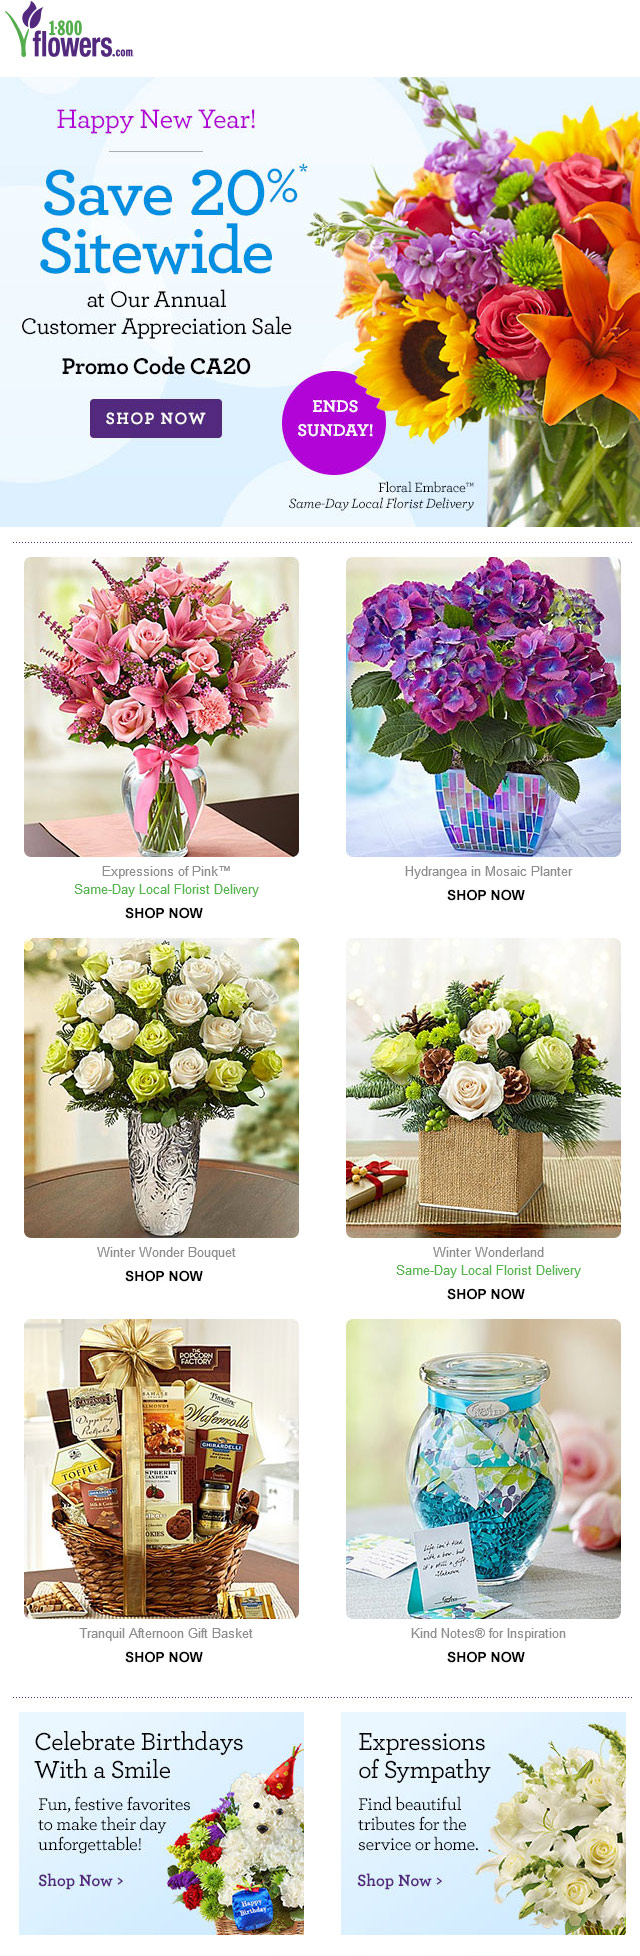 1-800-Flowers Coupon January 2018 20% off at 1-800-Flowers via promo code CA20